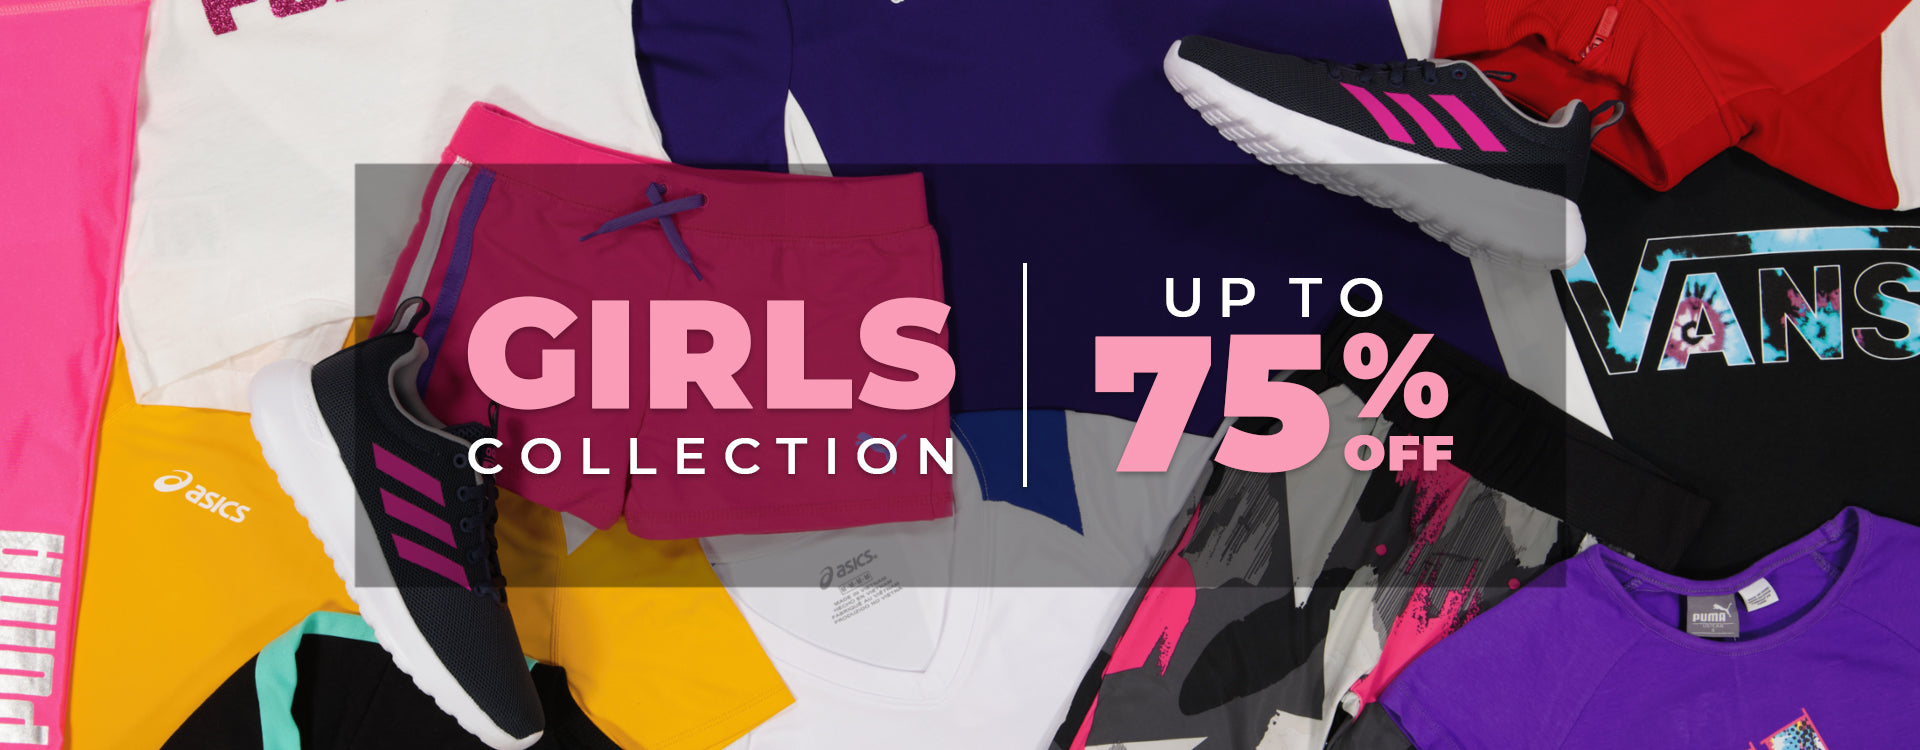 Girl's Collection Up To 75% Off